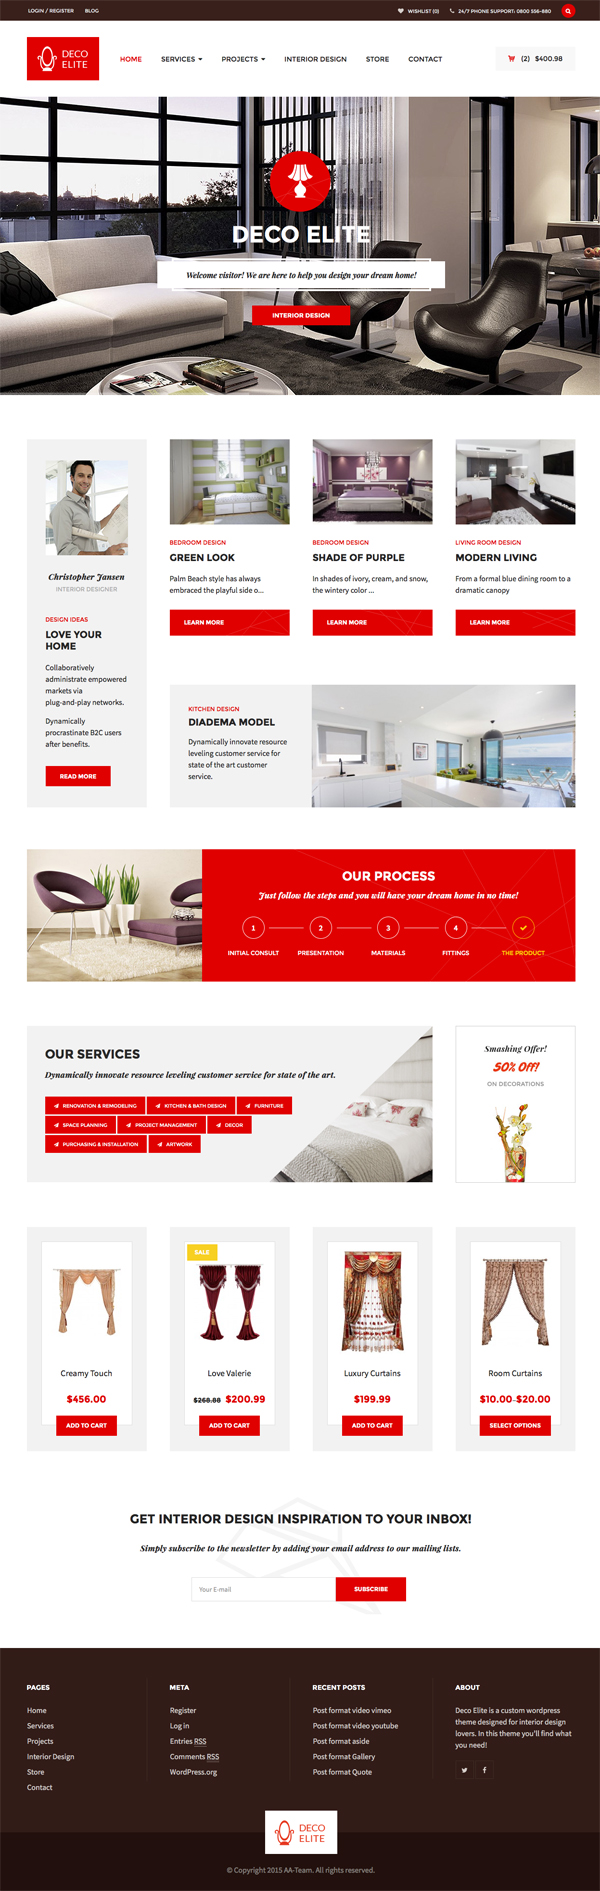 Deco Elite - Interior Design eCommerce WordPress Theme